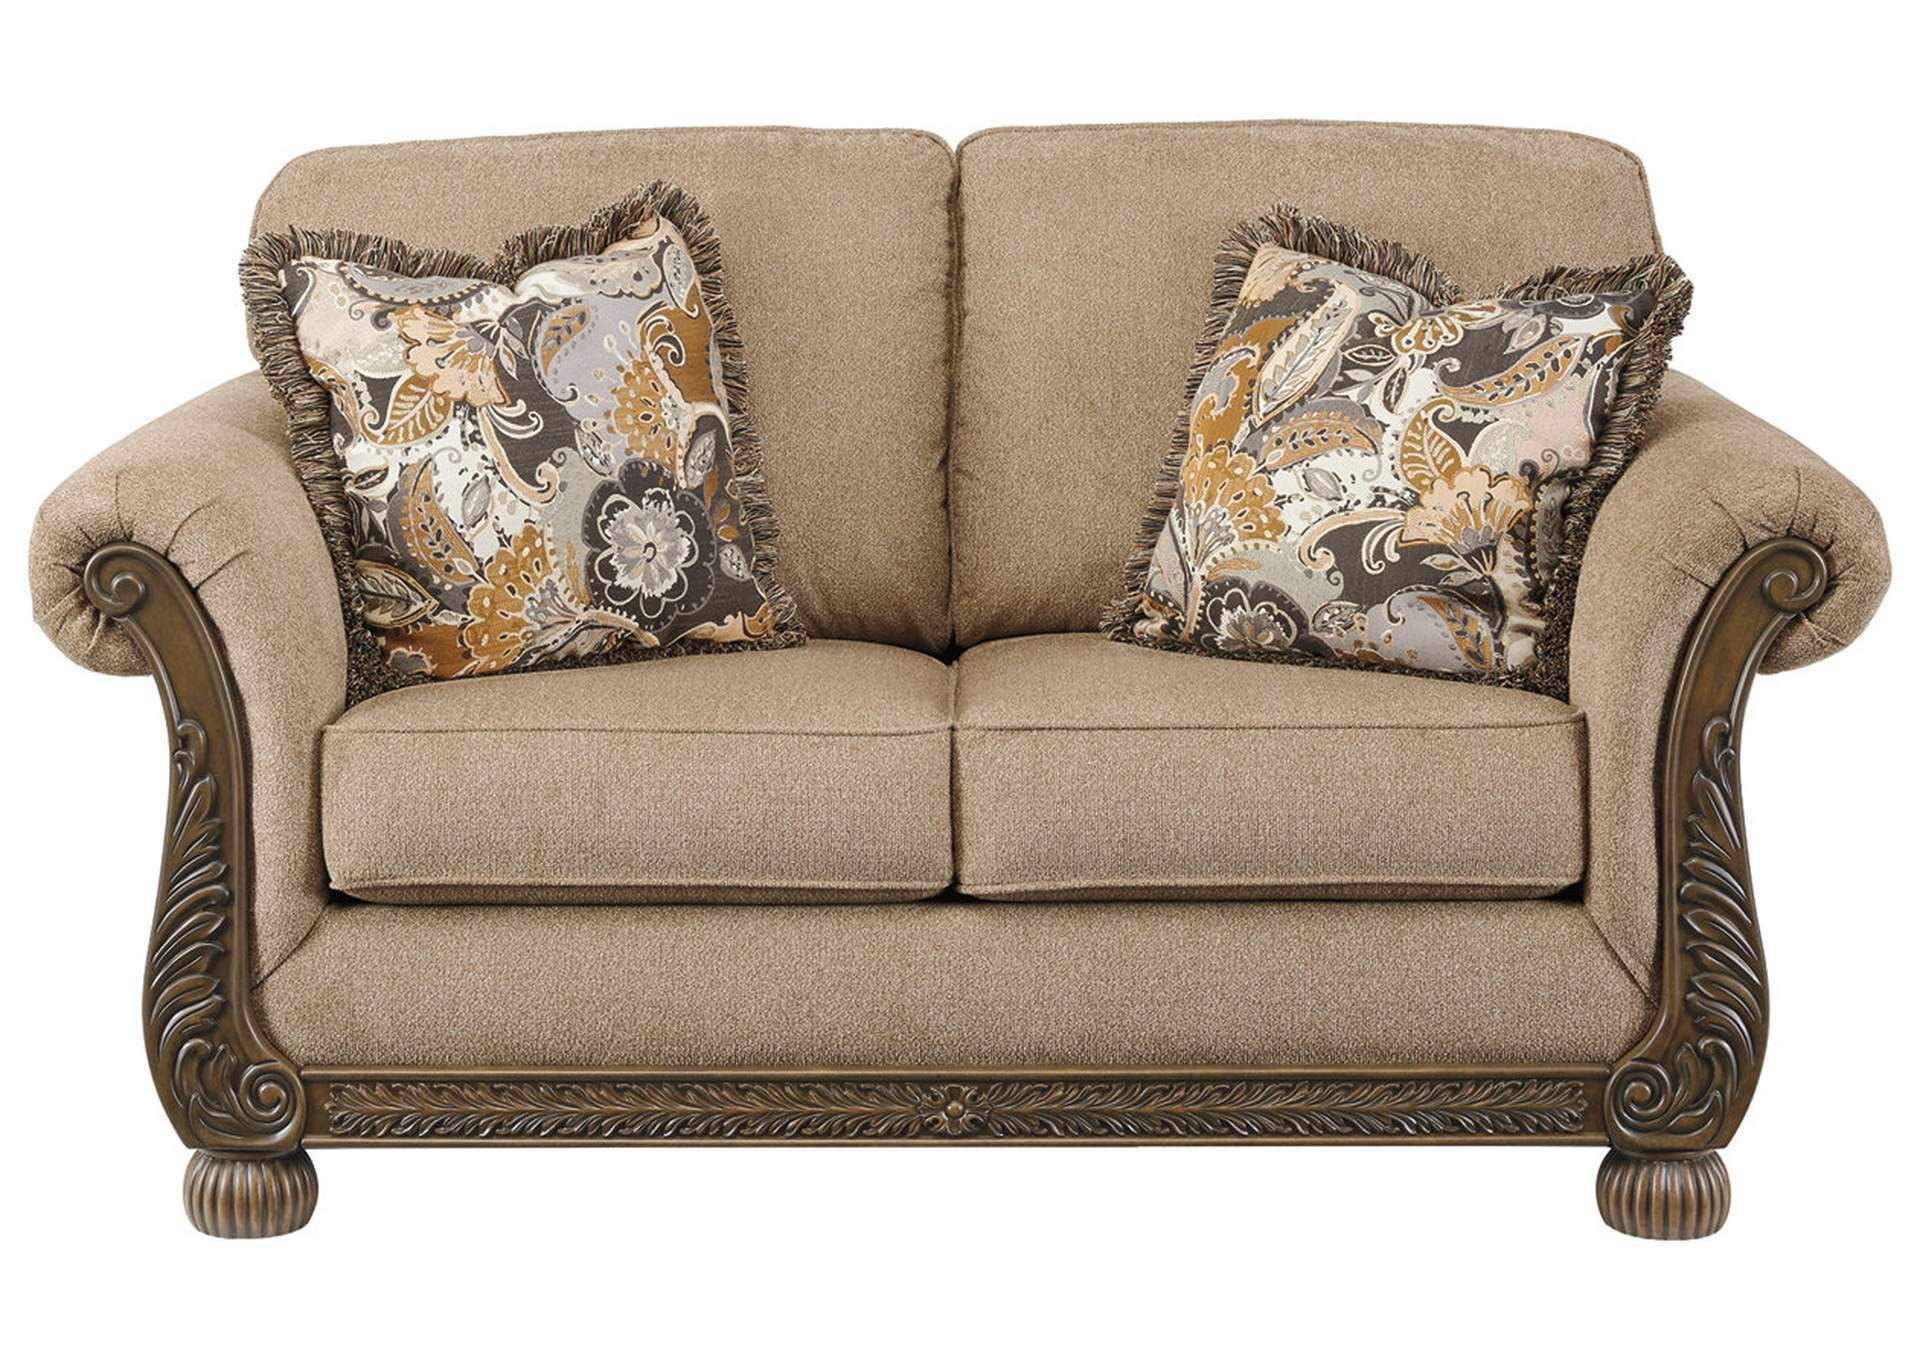 Westerwood Patina Loveseat,Signature Design By Ashley